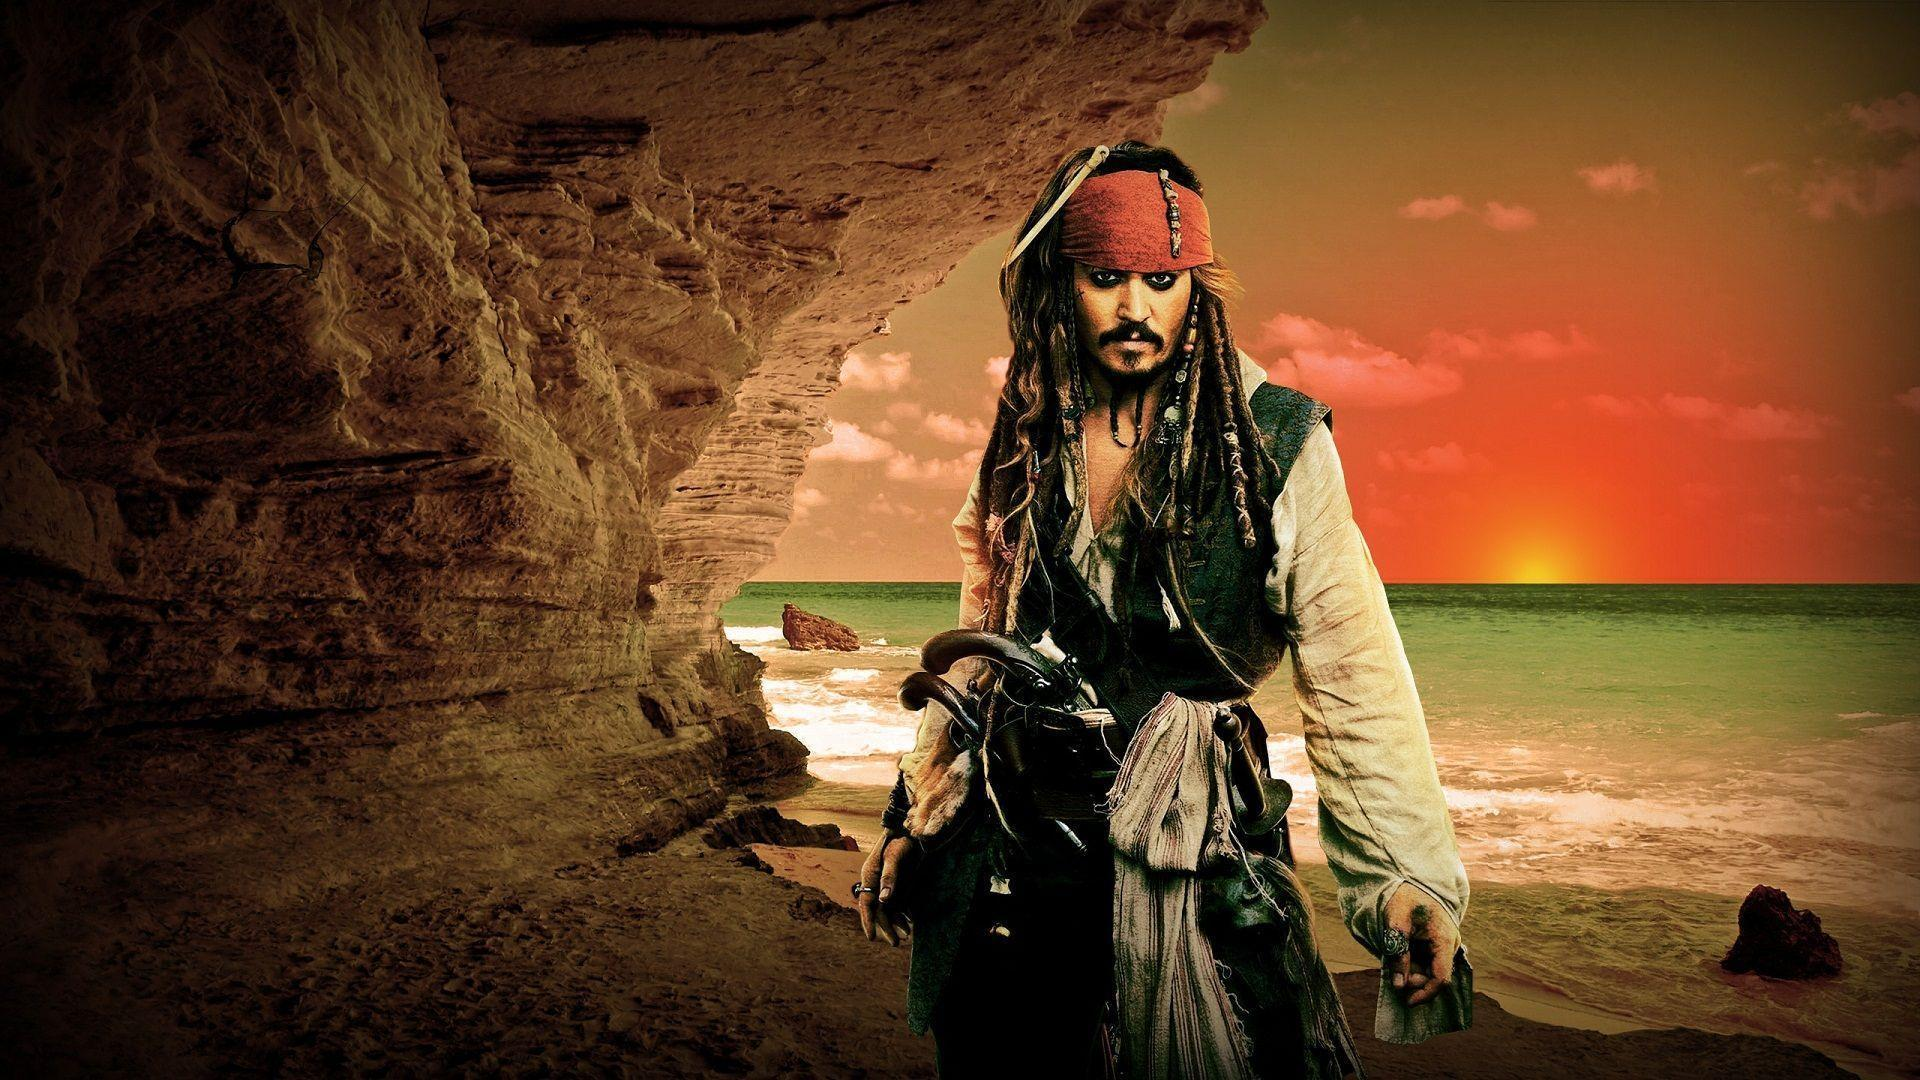 Jack Sparrow Hd Wallpaper HD